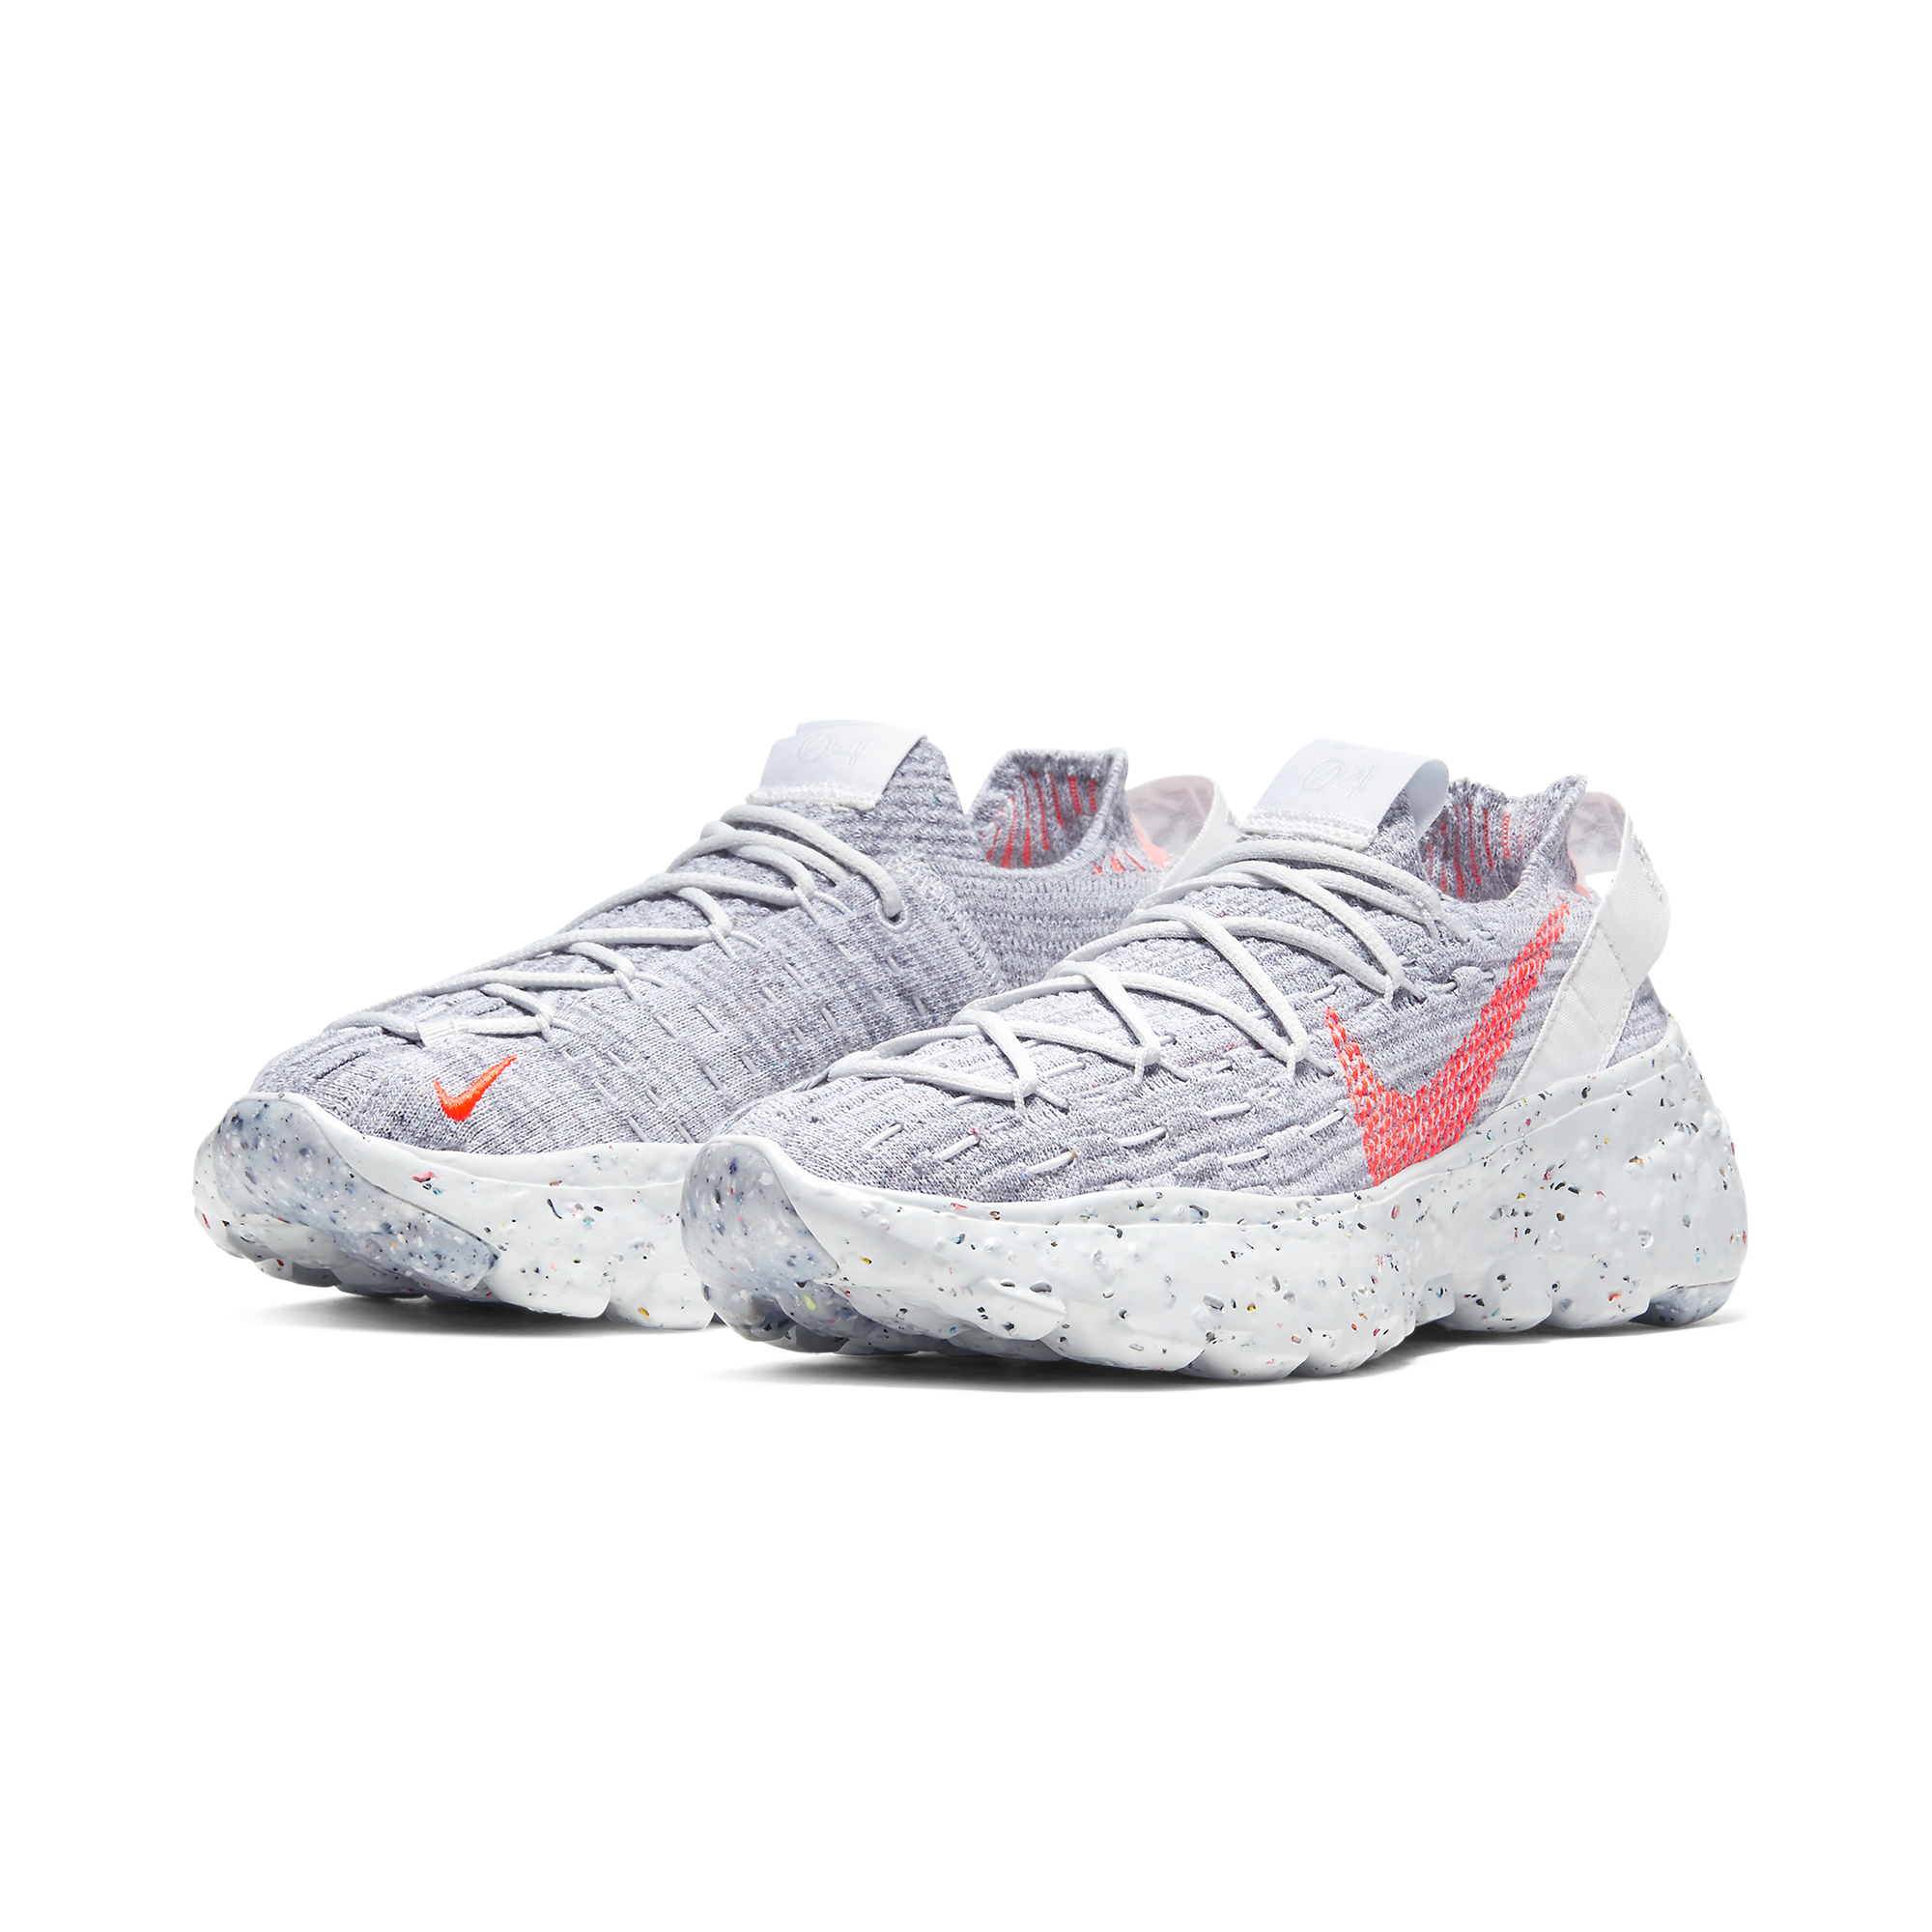 Nike Space Hippie 04 - Summit White